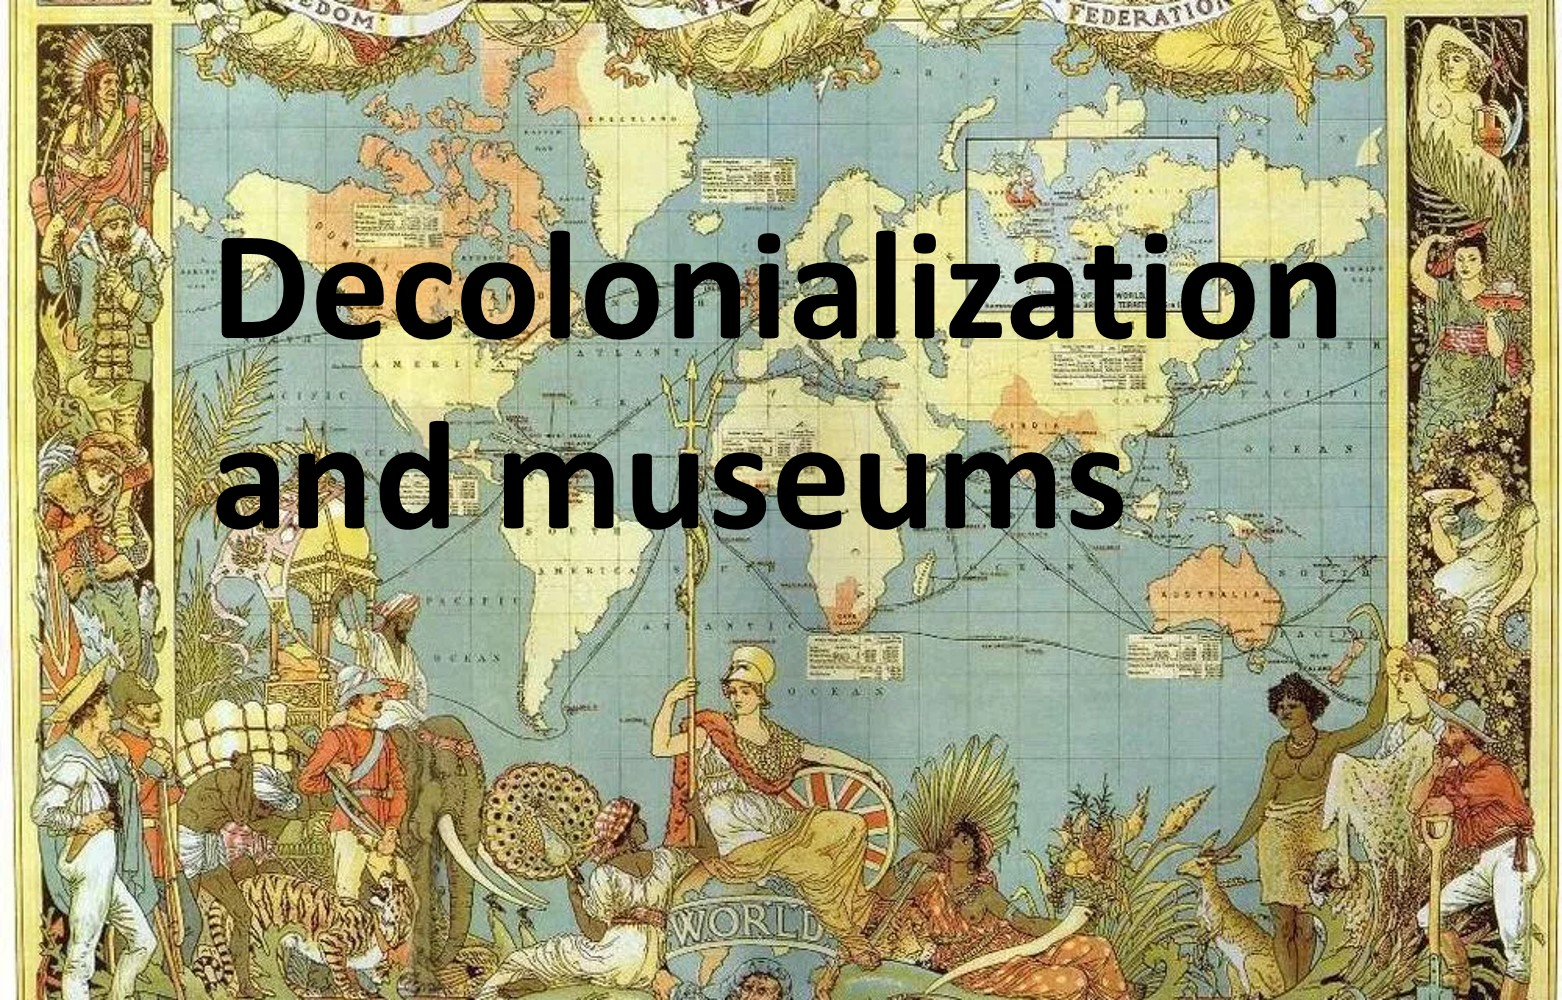 Can museums be decolonialized?